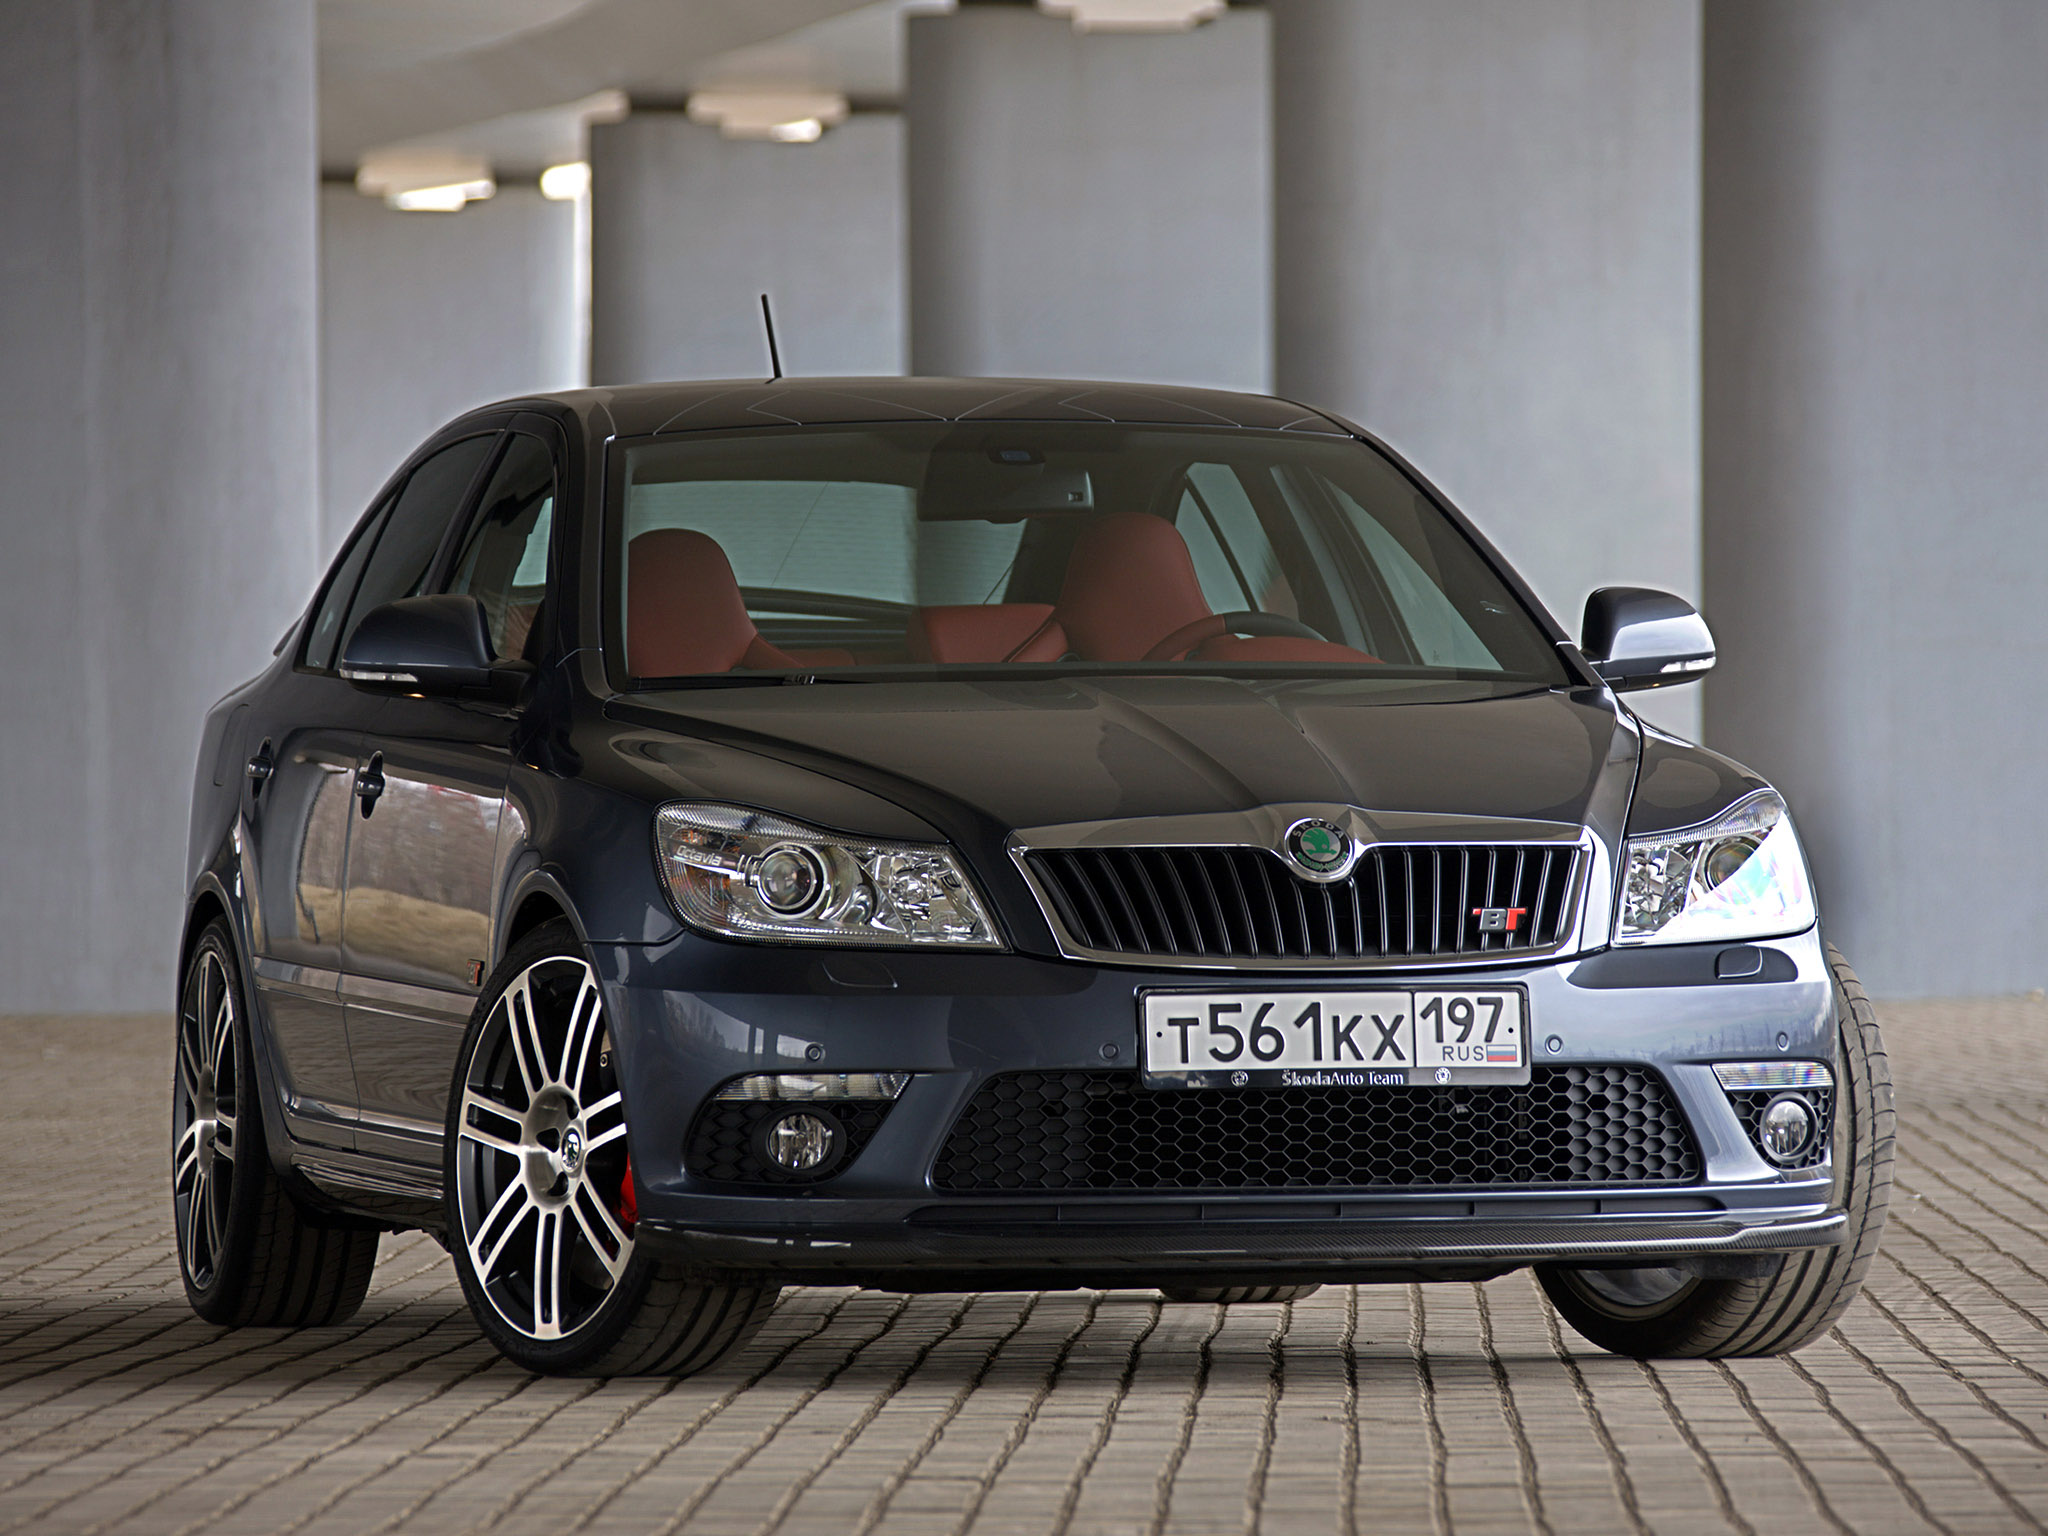 bt design skoda octavia rs 2011 bt design skoda octavia rs. Black Bedroom Furniture Sets. Home Design Ideas